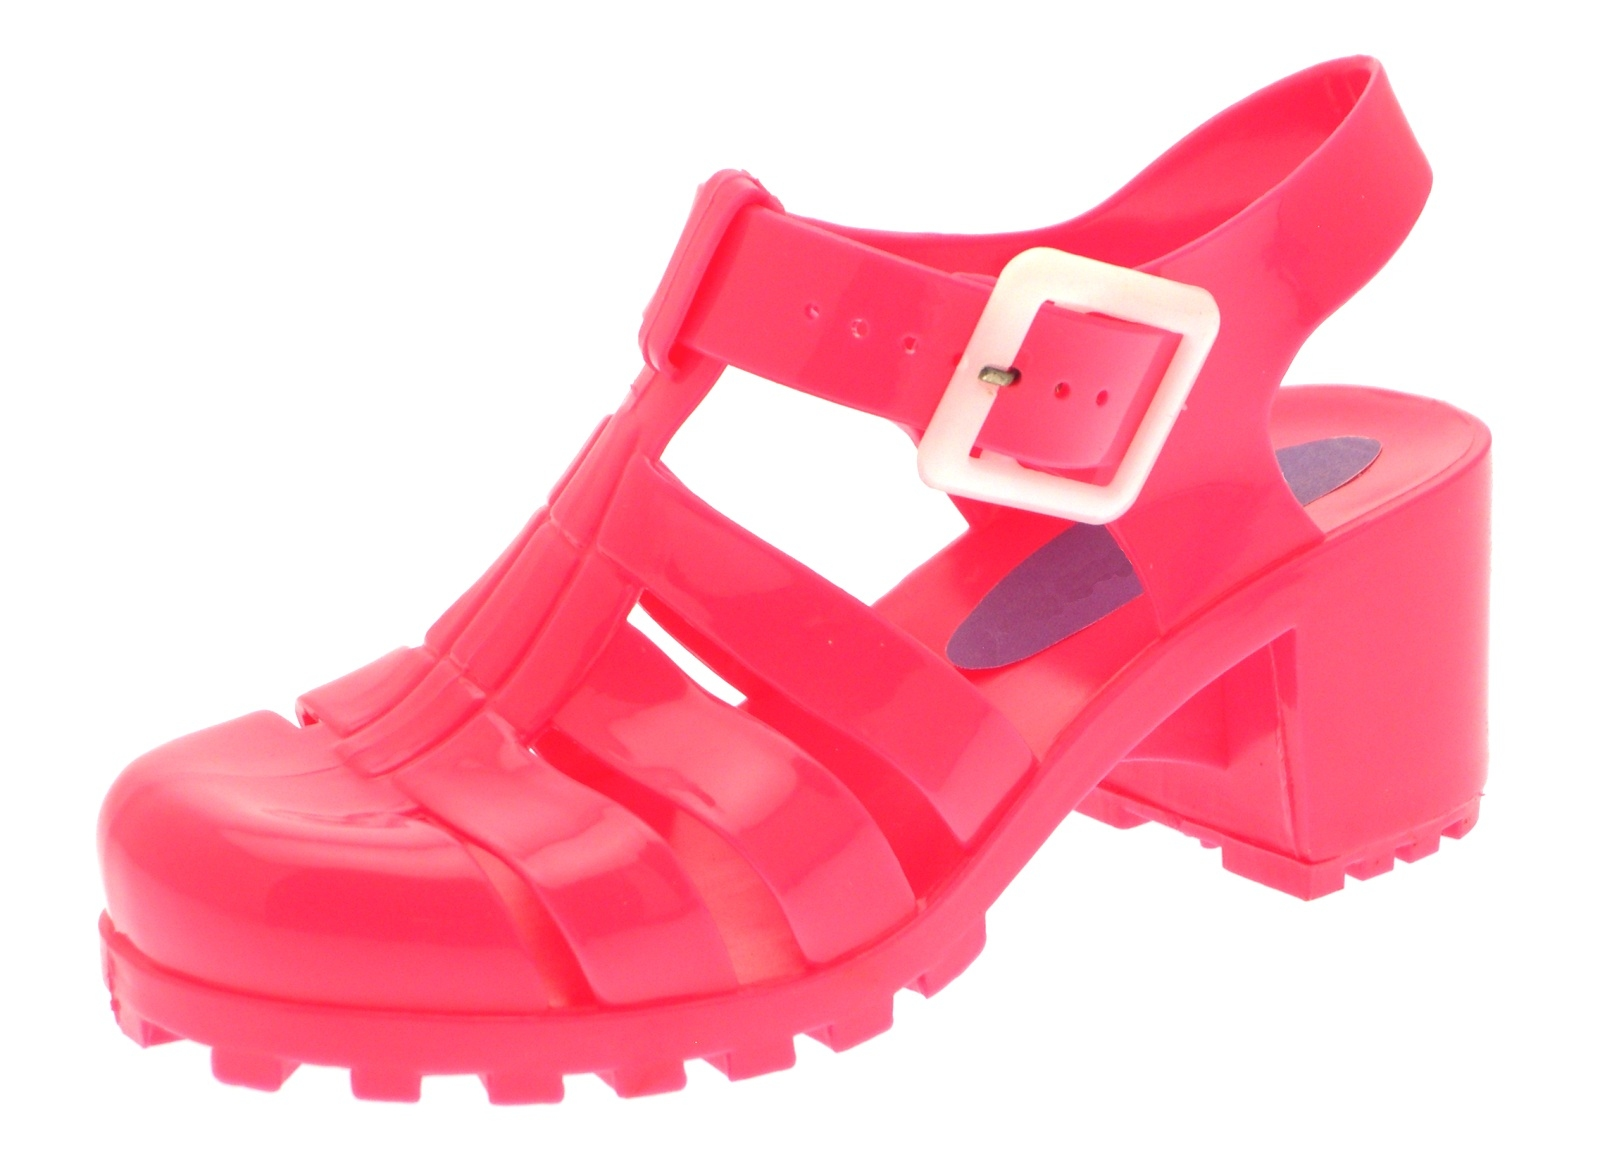 American Dog Little Girls Red LED Light Up Flashing Bow Jelly Shoes 6 Toddler Kids. Sold by Sophias Style Boutique Inc. $ $ American Dog Little Girls Nude LED Light Up Flashing Bow Jelly Shoes 6 Toddler Kids. Sold by Sophias Style Boutique Inc. $ $